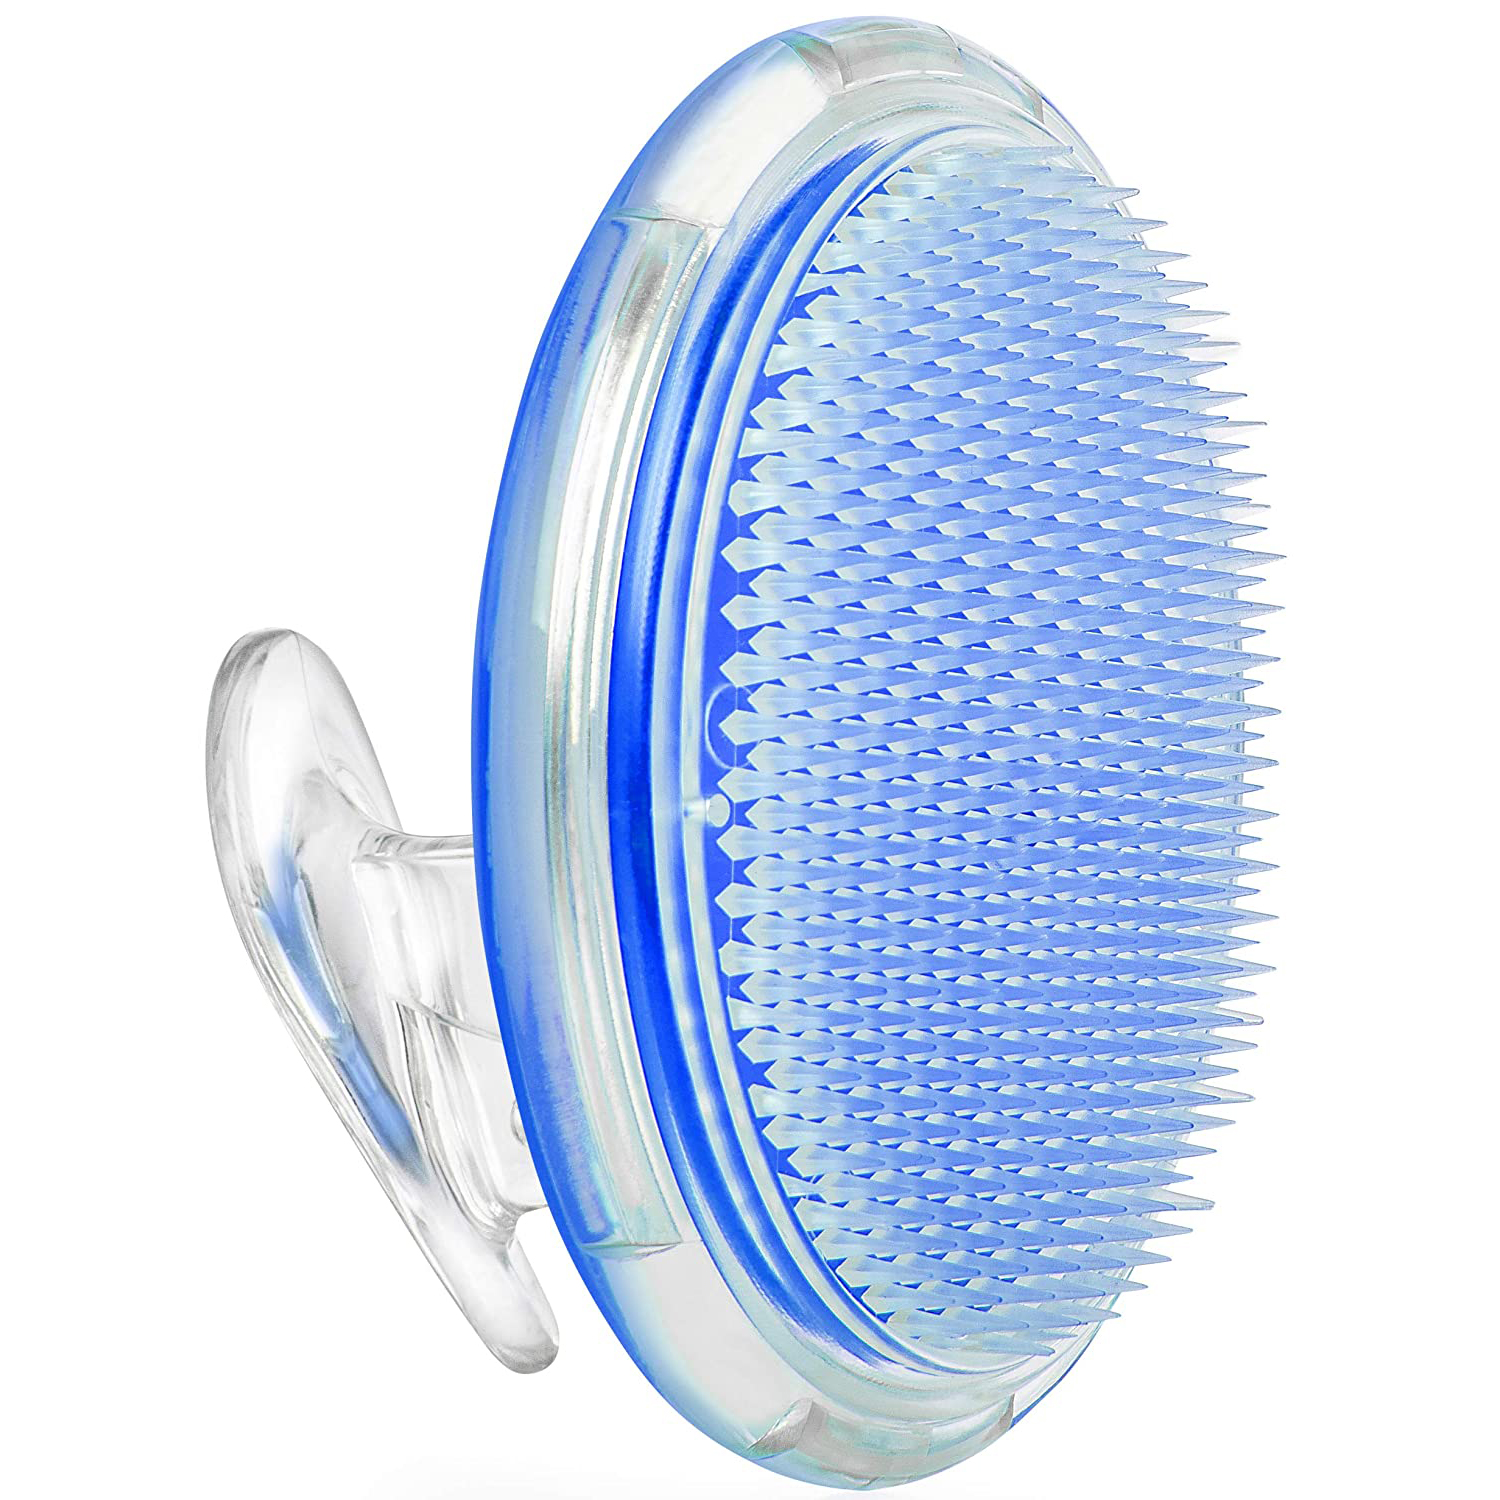 Exfoliating Brush to Treat and Prevent Razor Bumps and Ingrown Hairs